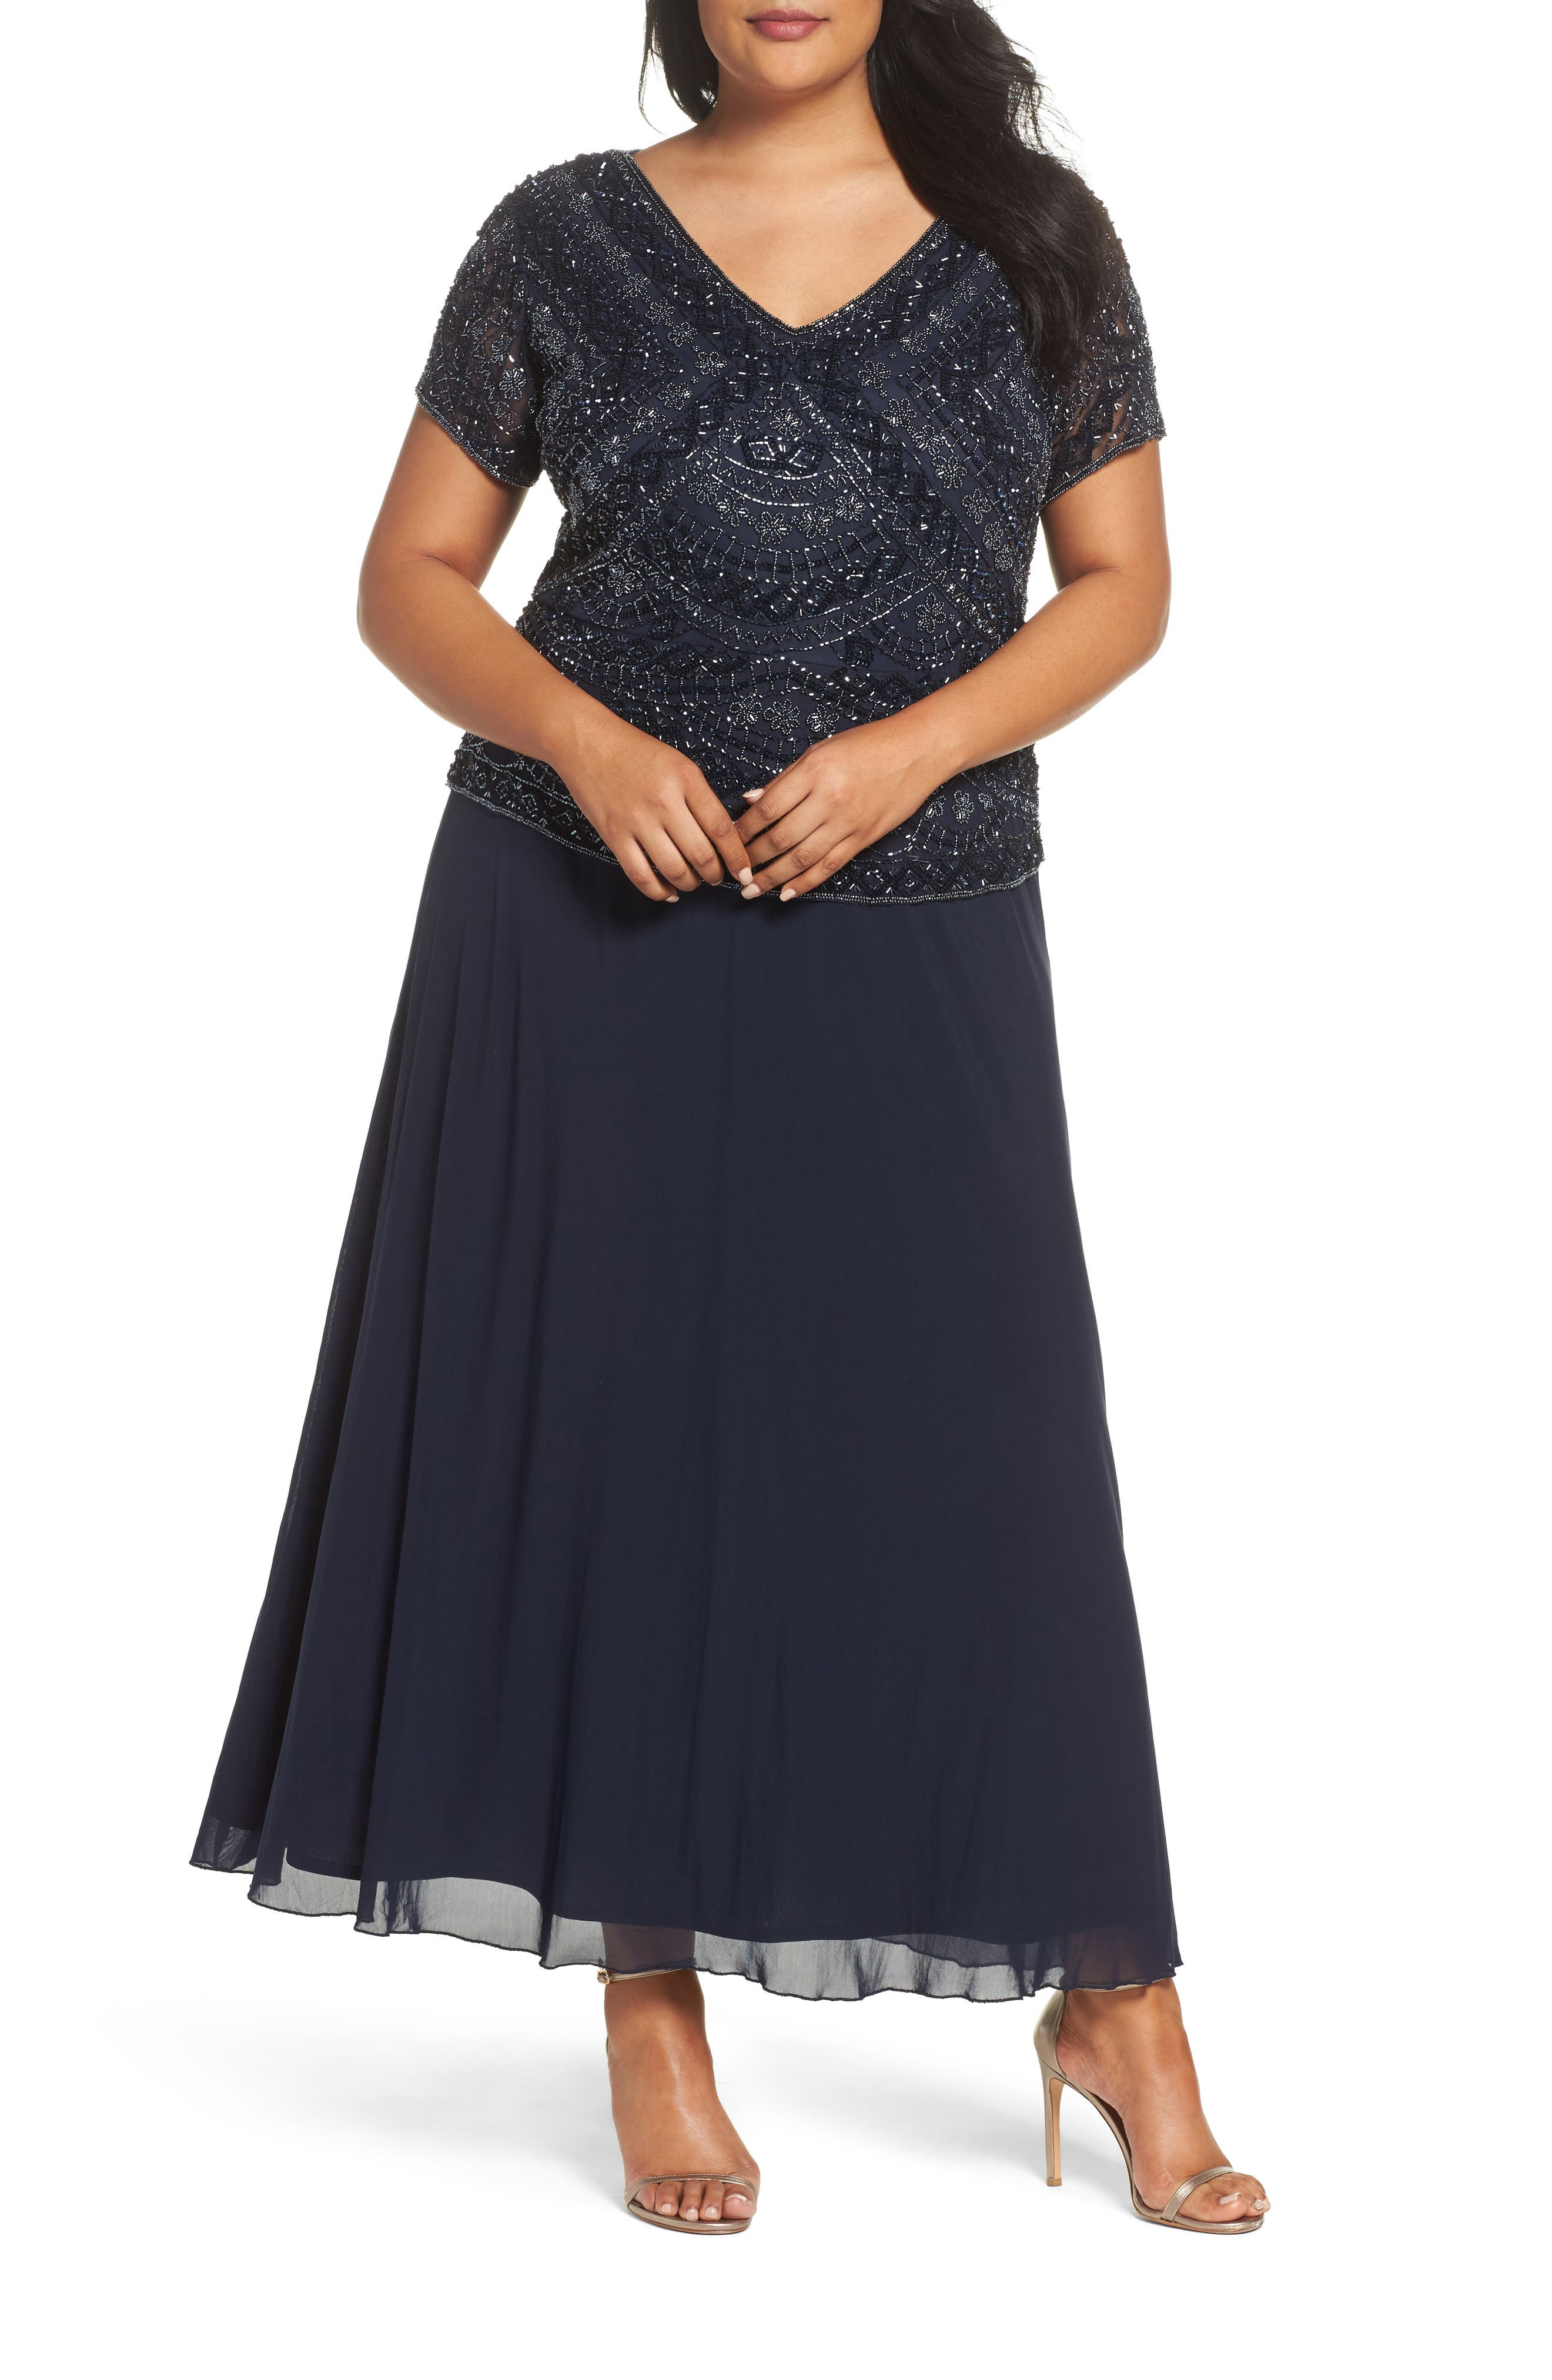 Alternate Image 1 Selected - Pisarro Nights Beaded Mock Two-Piece Gown (Plus Size)